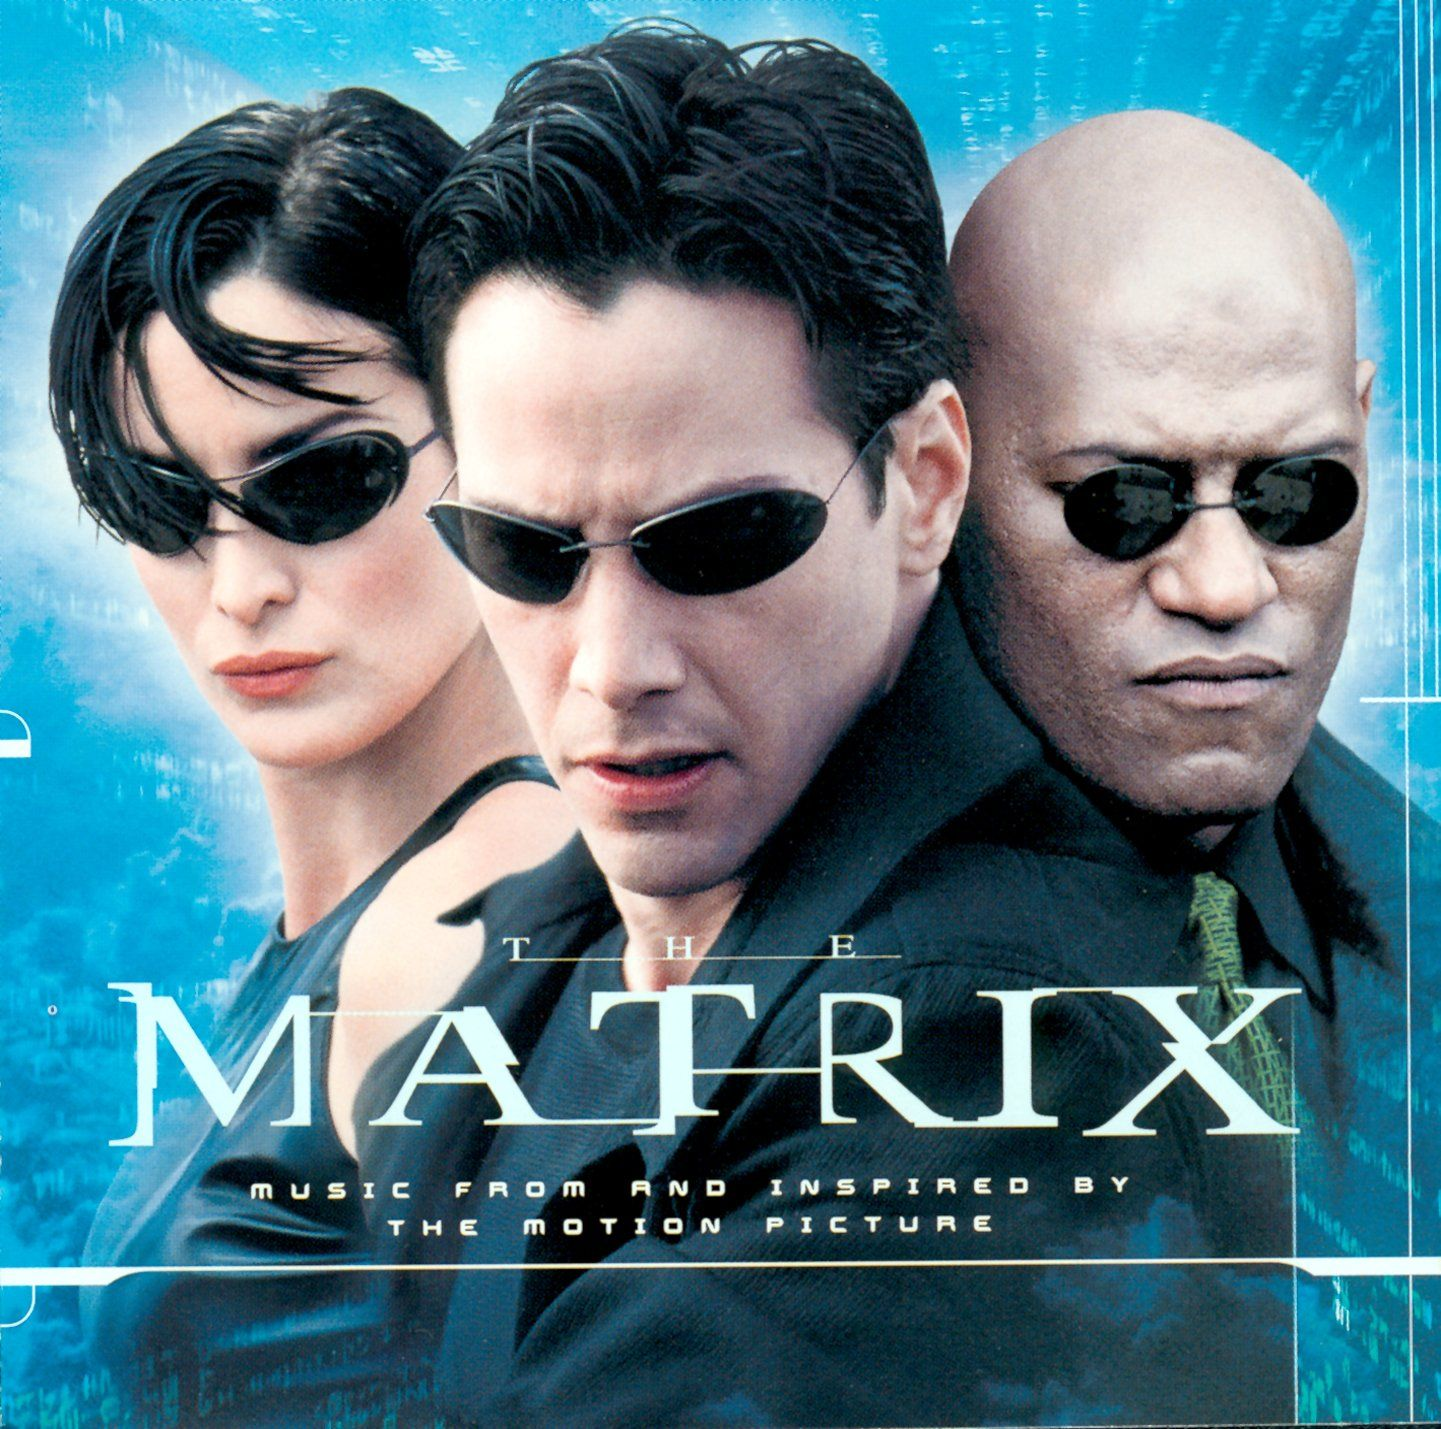 Hollywood Movies The Matrix Free Movies Online Full Movies Online Free Movie Soundtracks